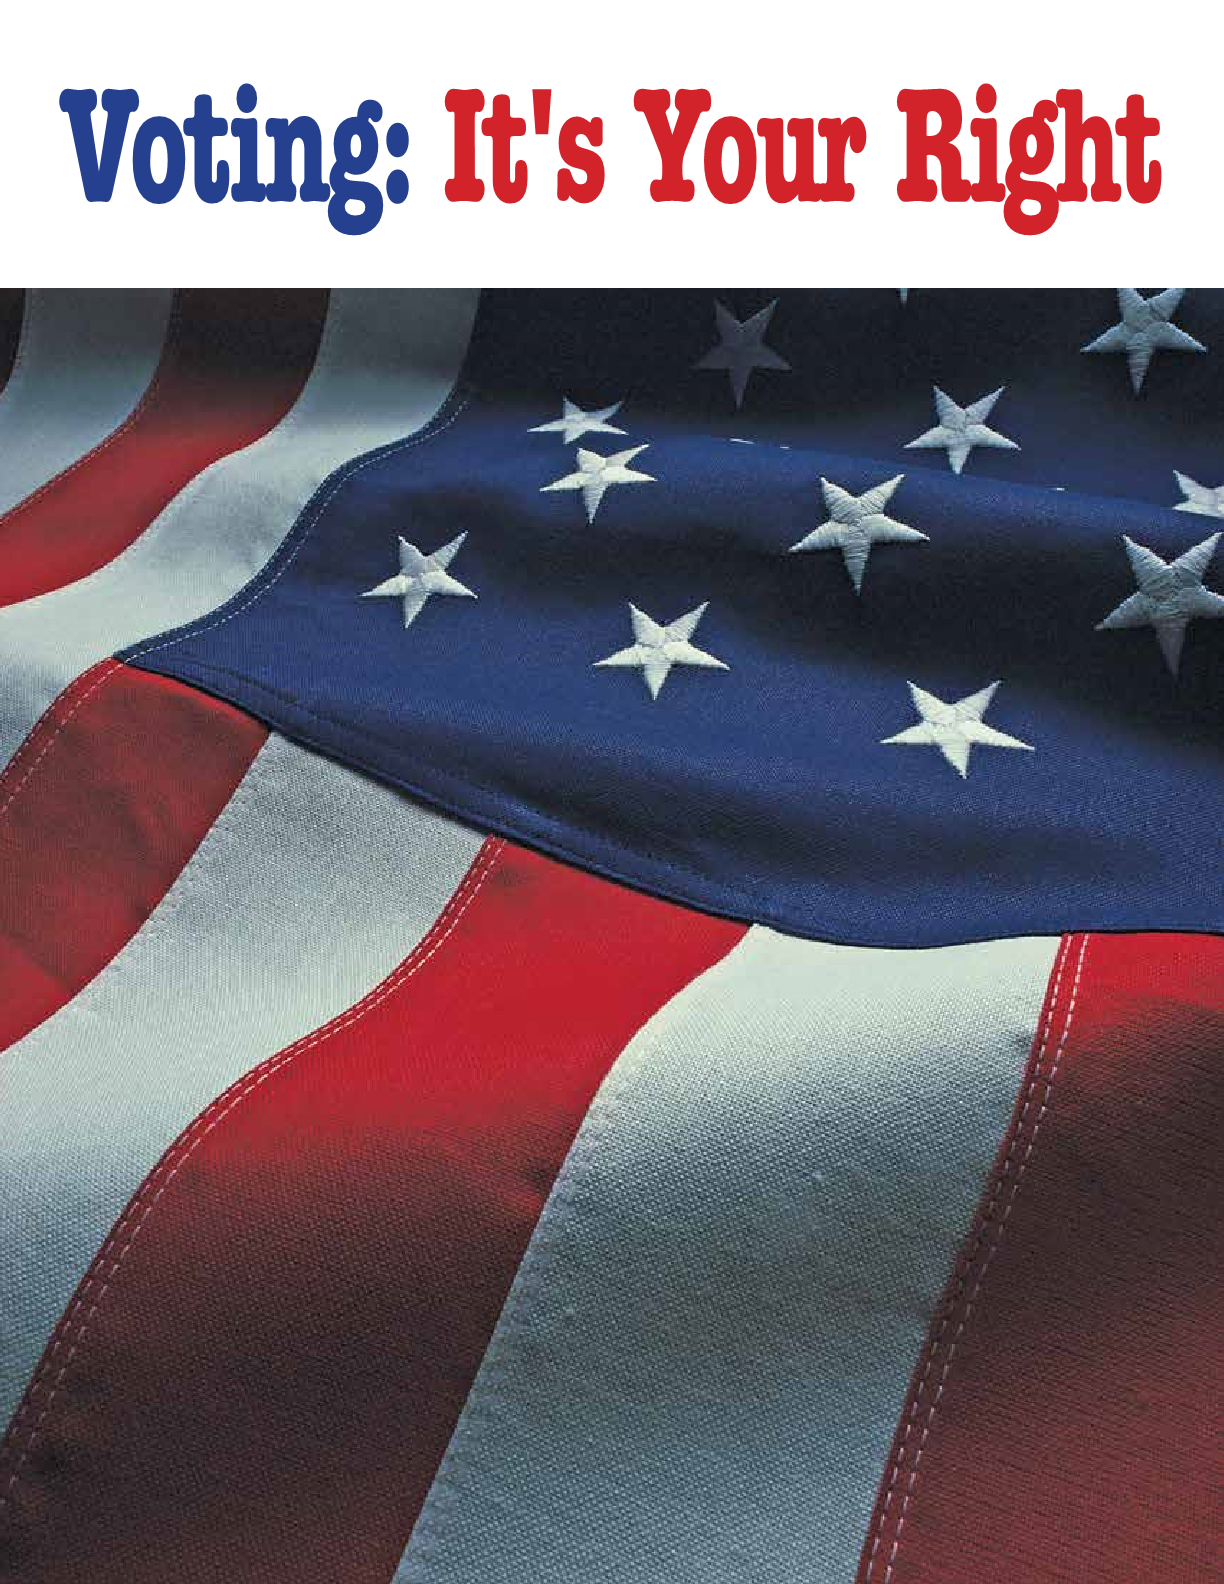 Voting: It's Your Right